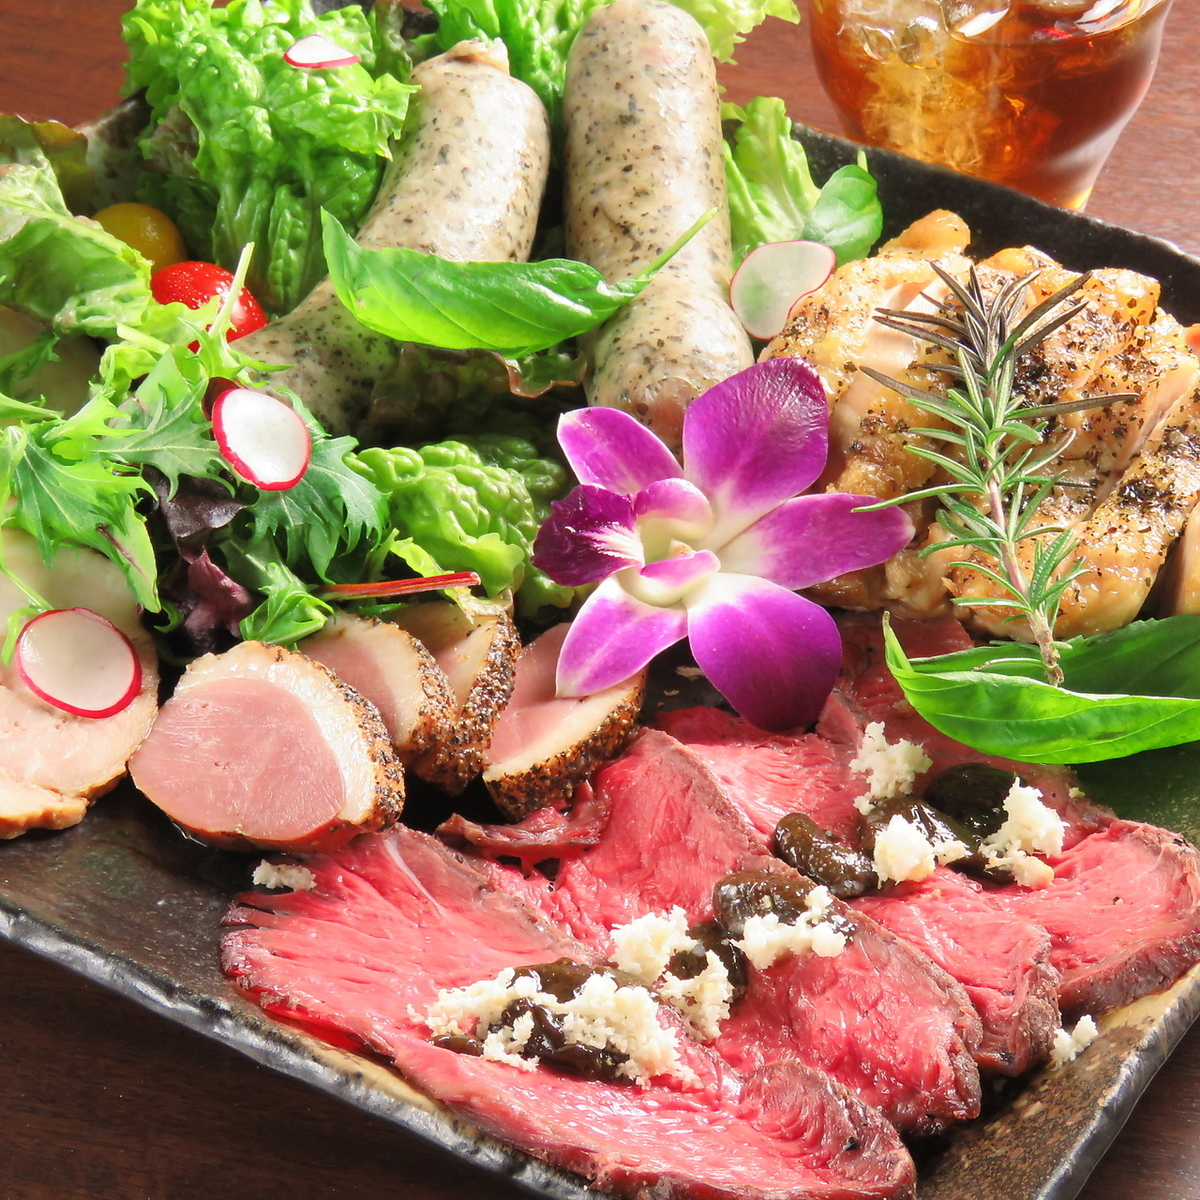 Low temperature cooked meat assortment